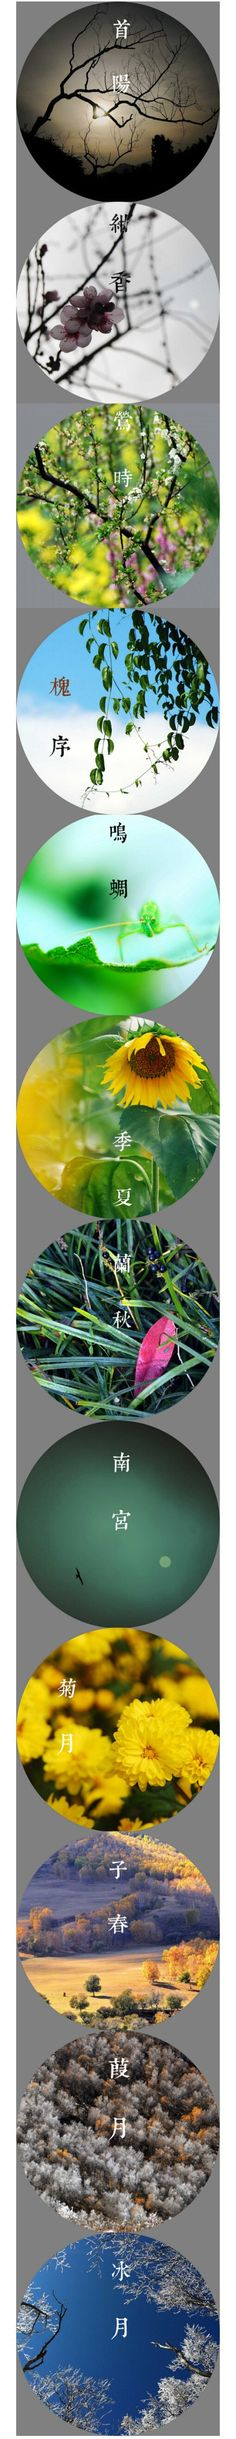 Chinese lunar calendar each month nickname: January-Shouyang, February-cyanosis incense, March-warbler, April-Huai sequence, May-Wong cicada, June-Jixia, July-Lan Qiu, August-Southern Palace, September-chrysanthemum month , Oct.-sub spring, Nov.-Jia month, December-Icy Moon.